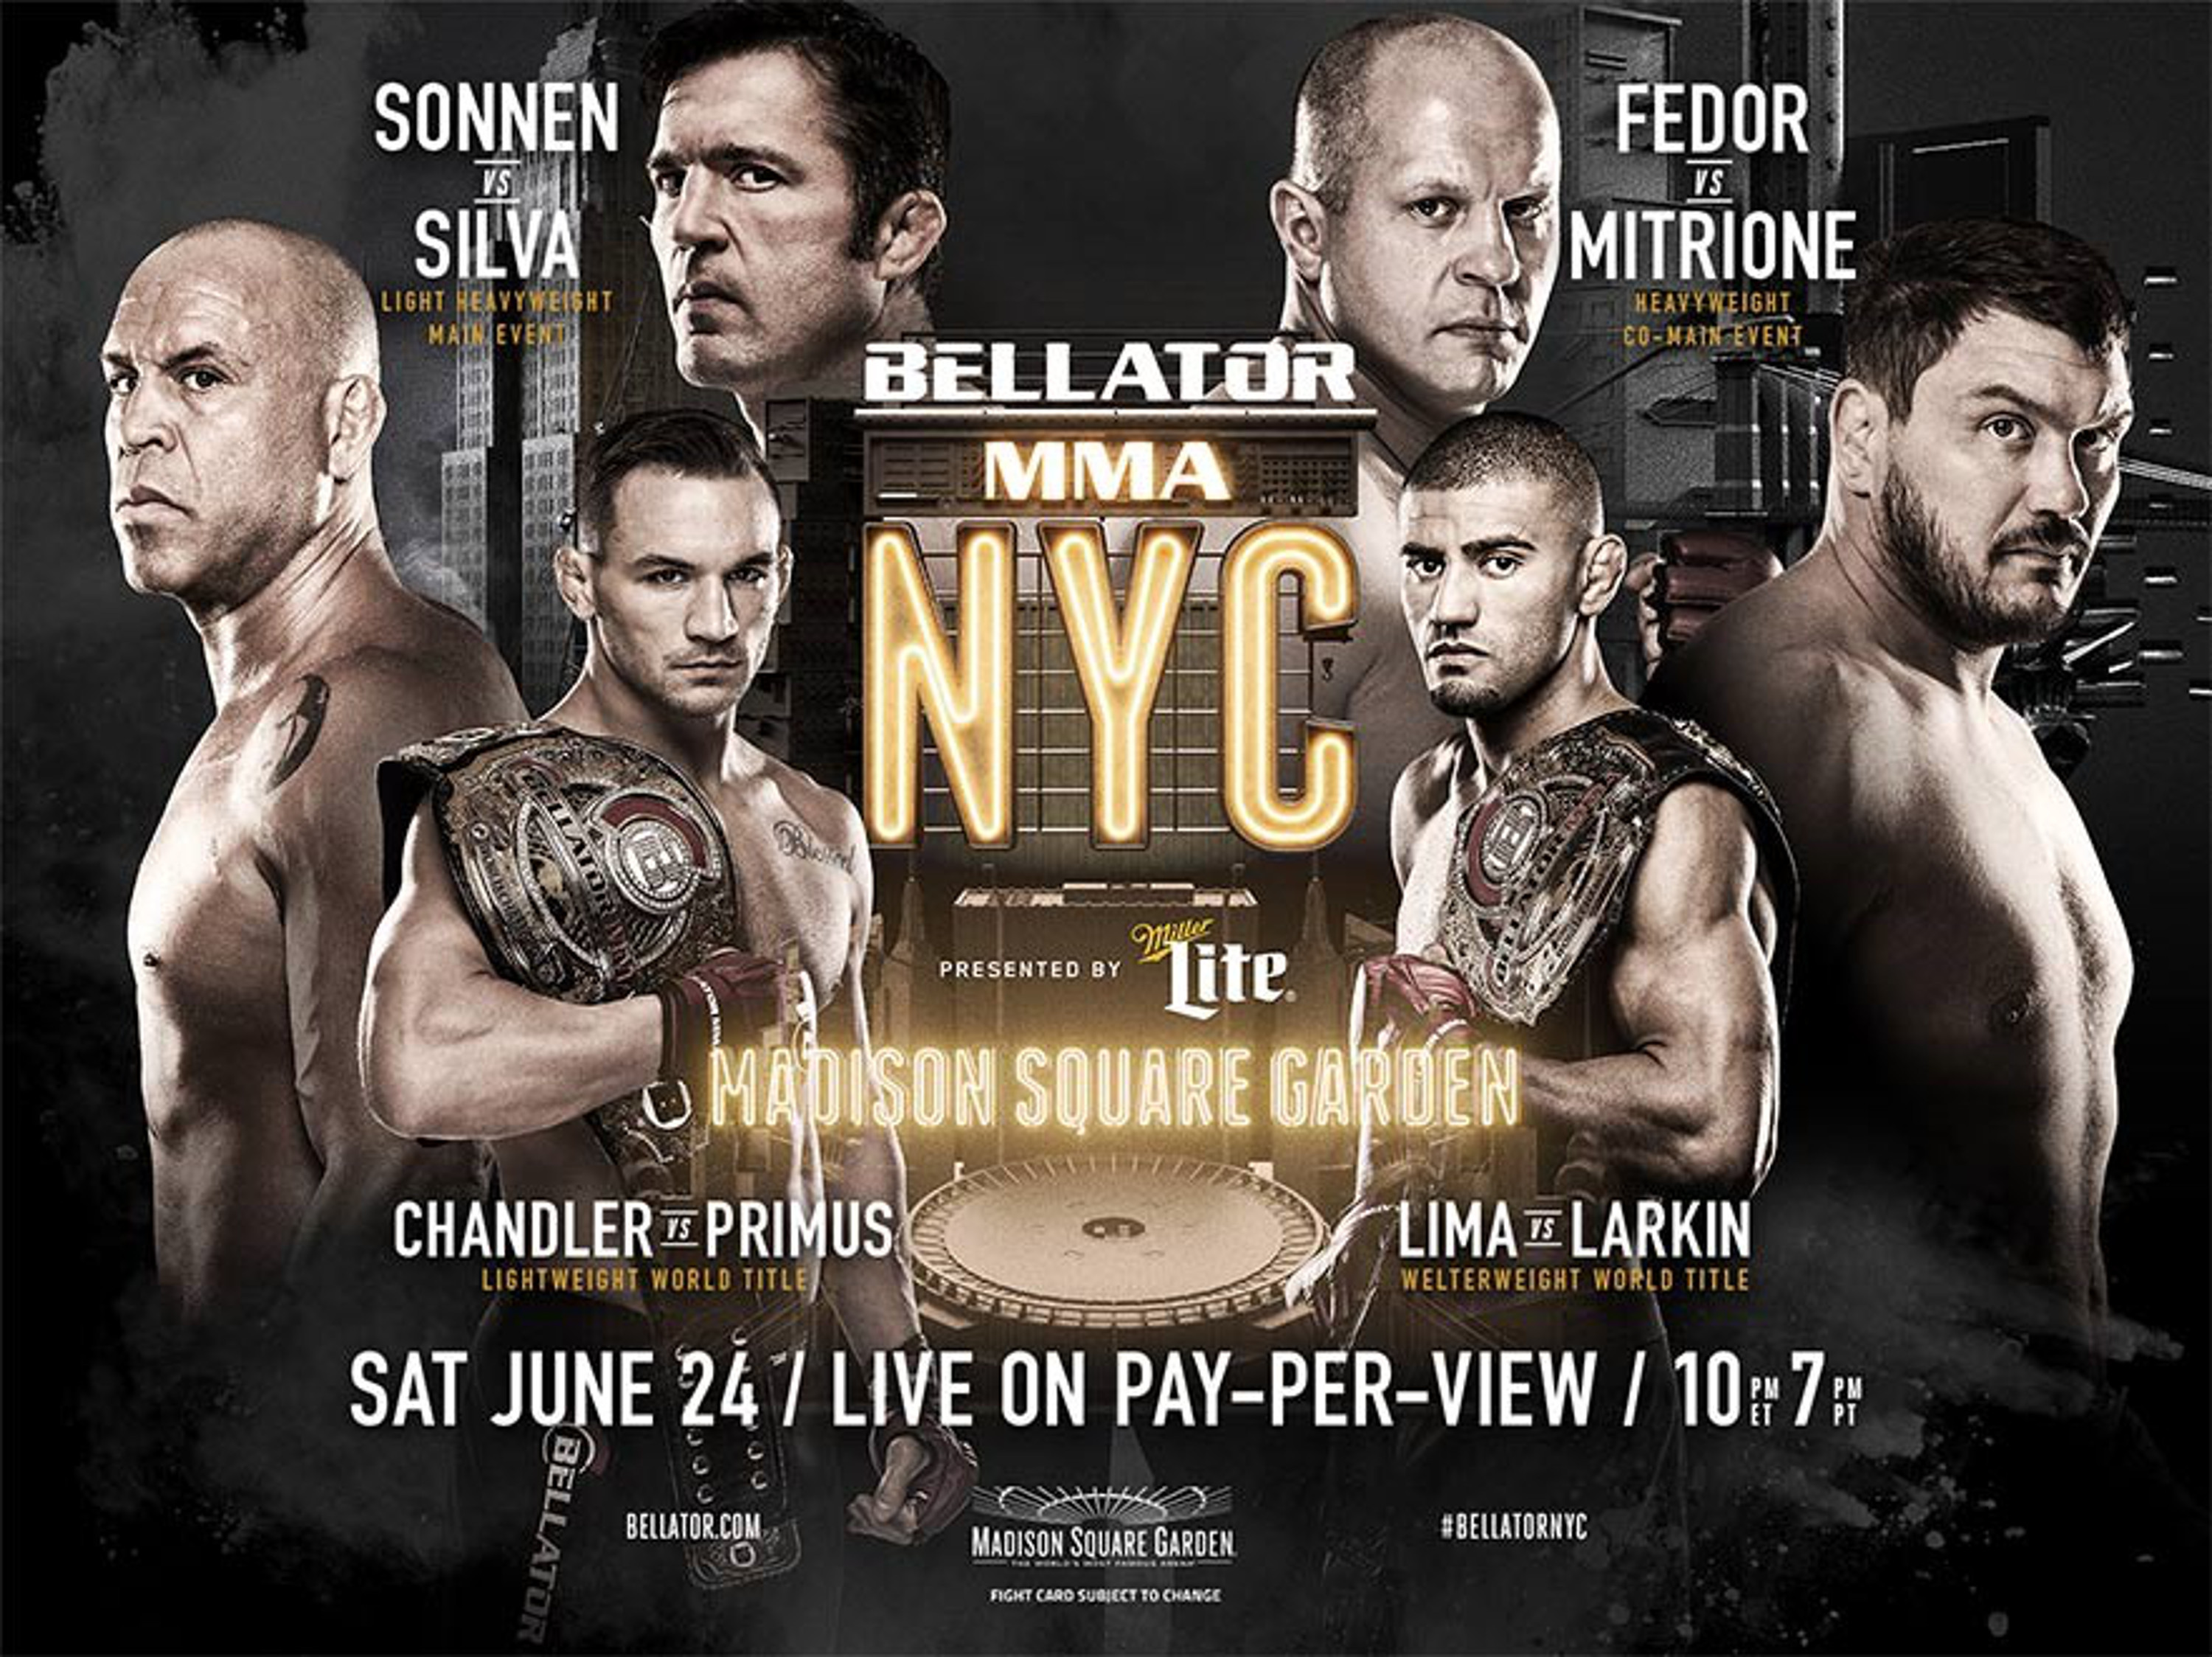 Cable industry's live Ultra HD broadcast of Mixed Martial Arts (MMA) bouts, produced by Bellator NYC, marks milestone for MVPDs in the US (Photo: Business Wire)